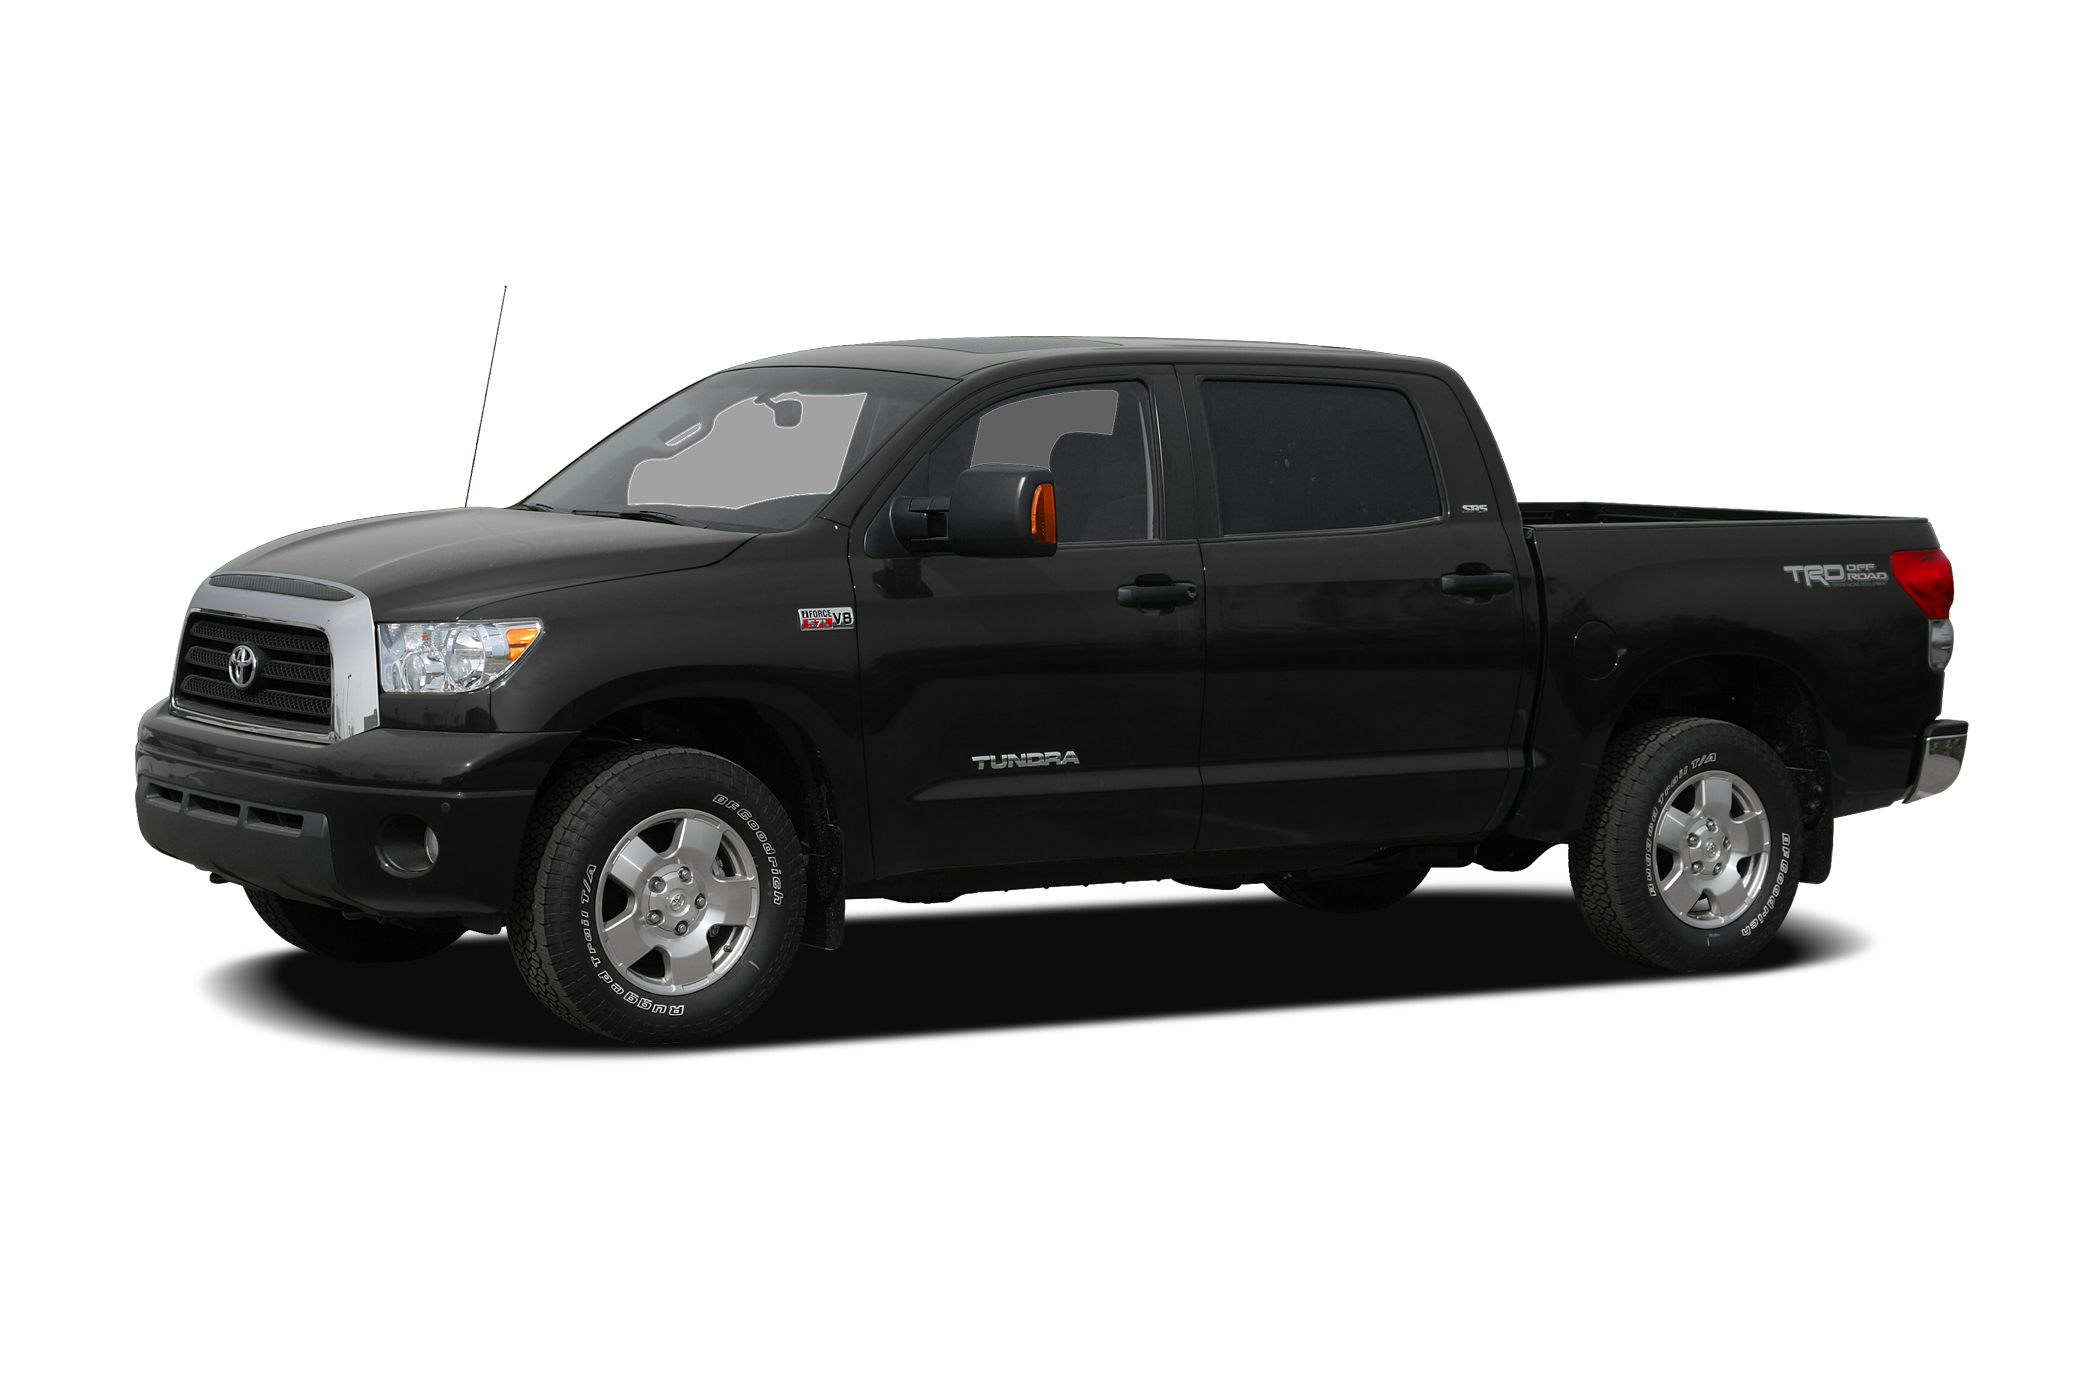 2007 Toyota Tundra SR5 CrewMax Crew Cab Pickup for sale in East Greenbush for $20,997 with 117,299 miles.